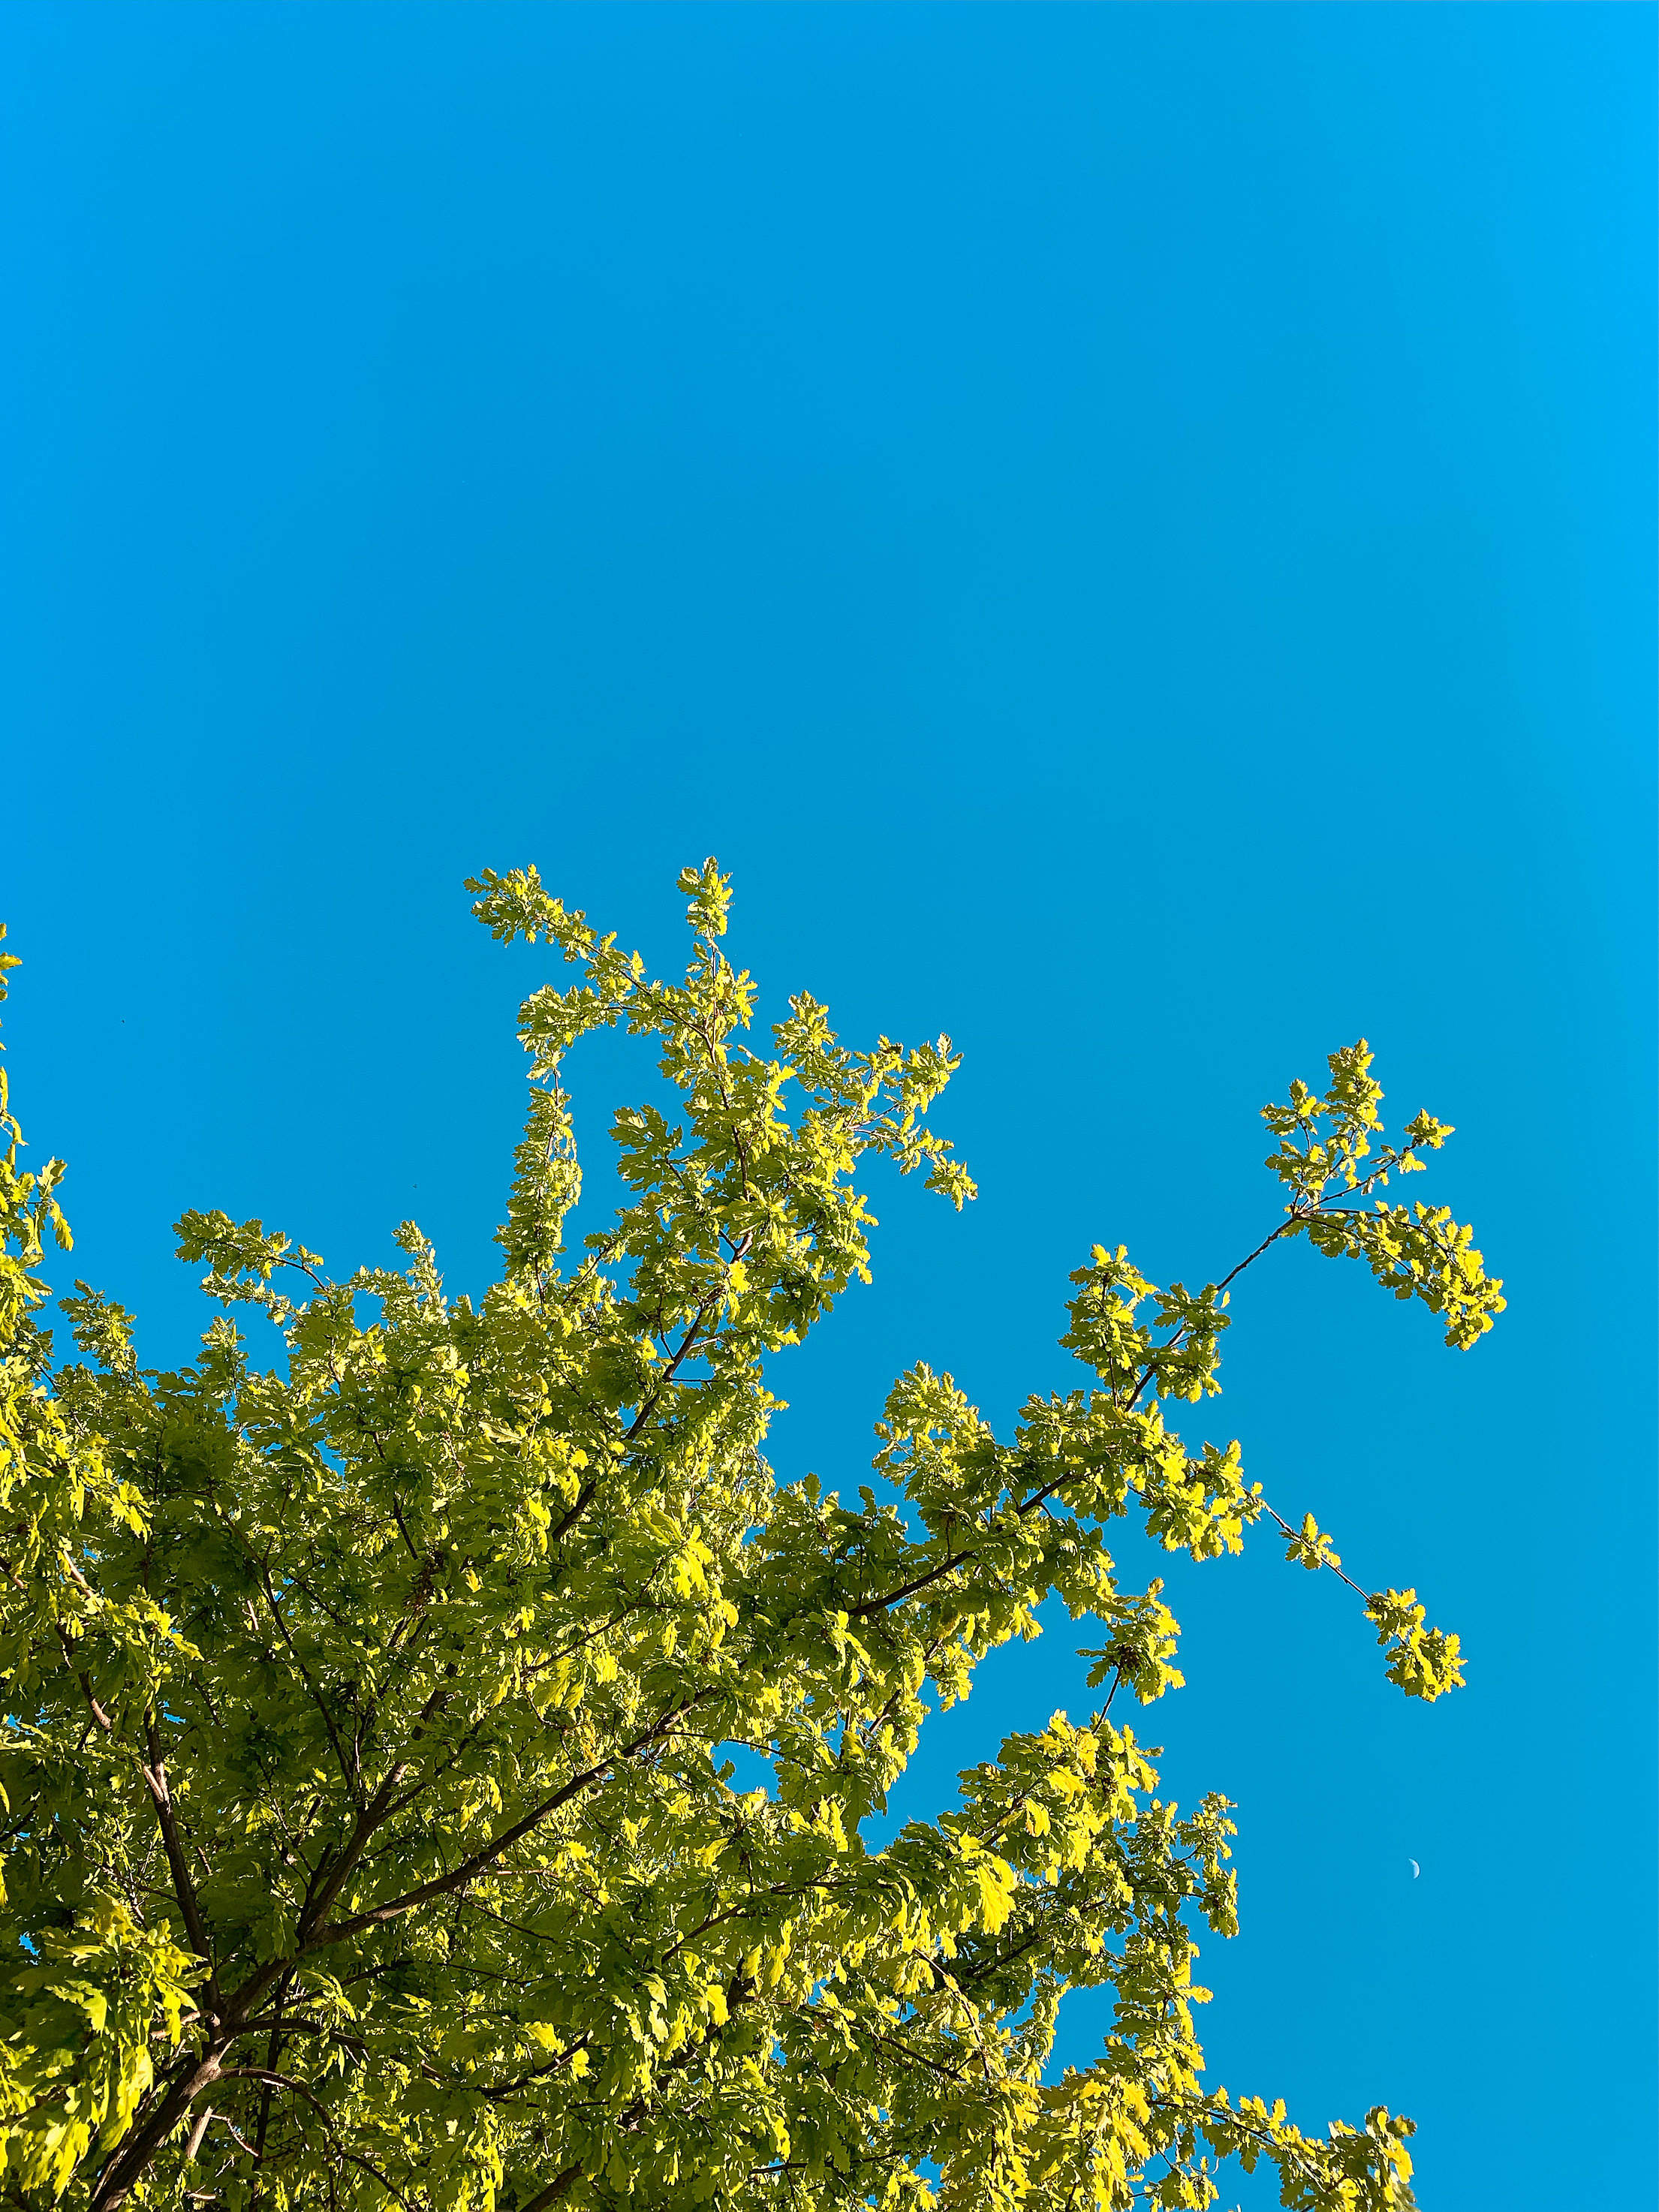 Green Leaves Against Bright Sky Free Stock Photo